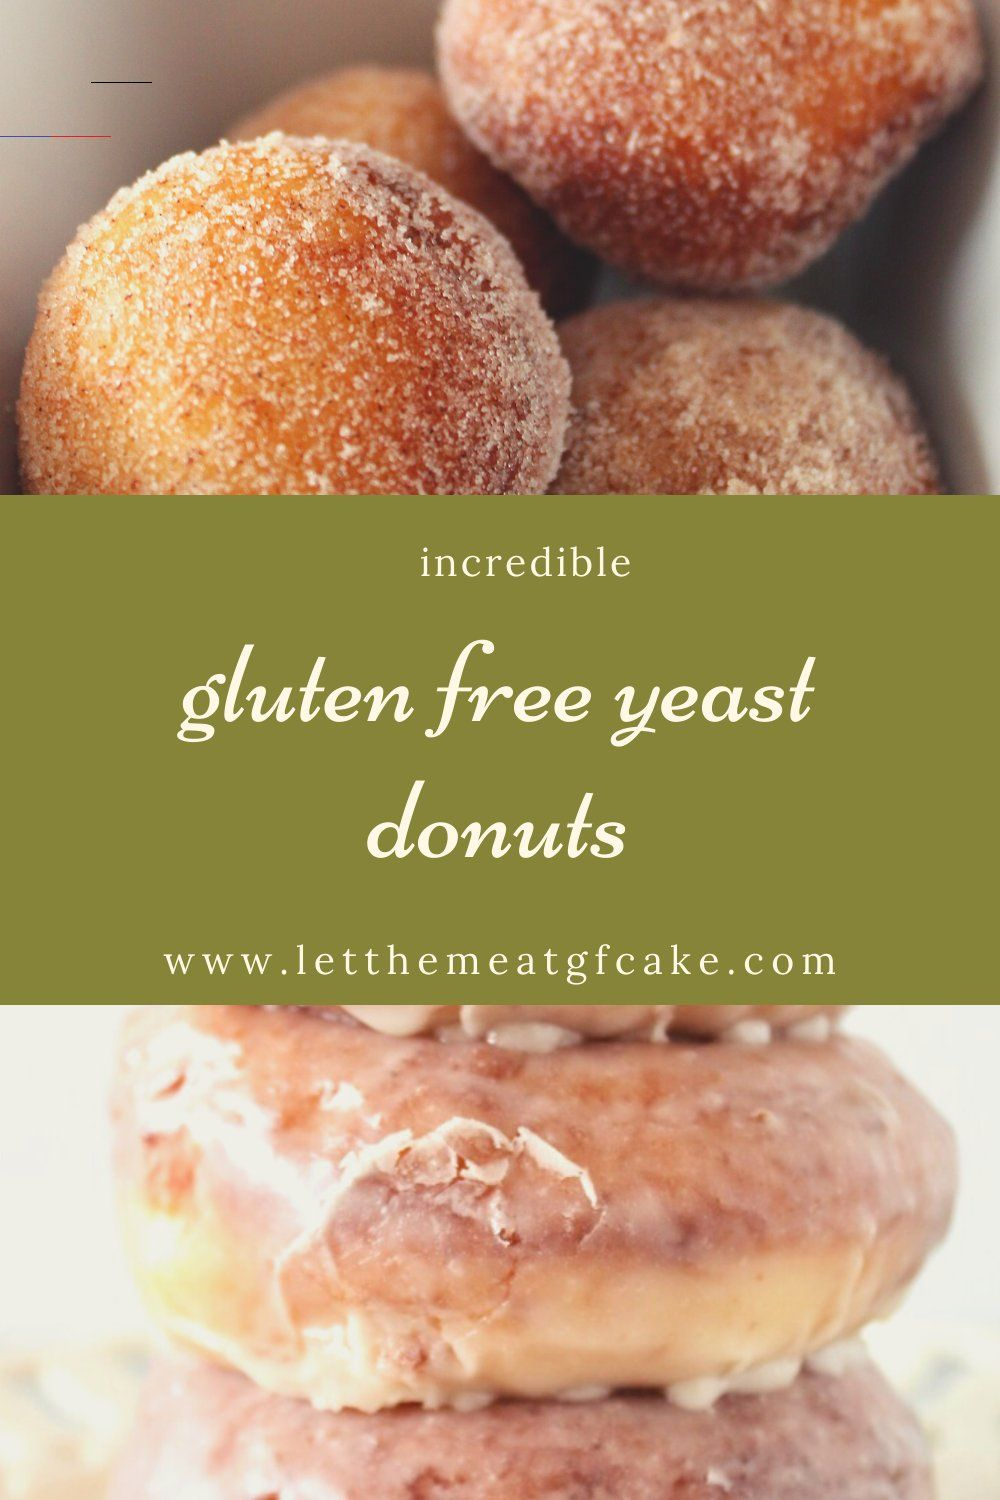 INCREDIBLE GLUTEN FREE YEAST DONUTS glutenfree Are